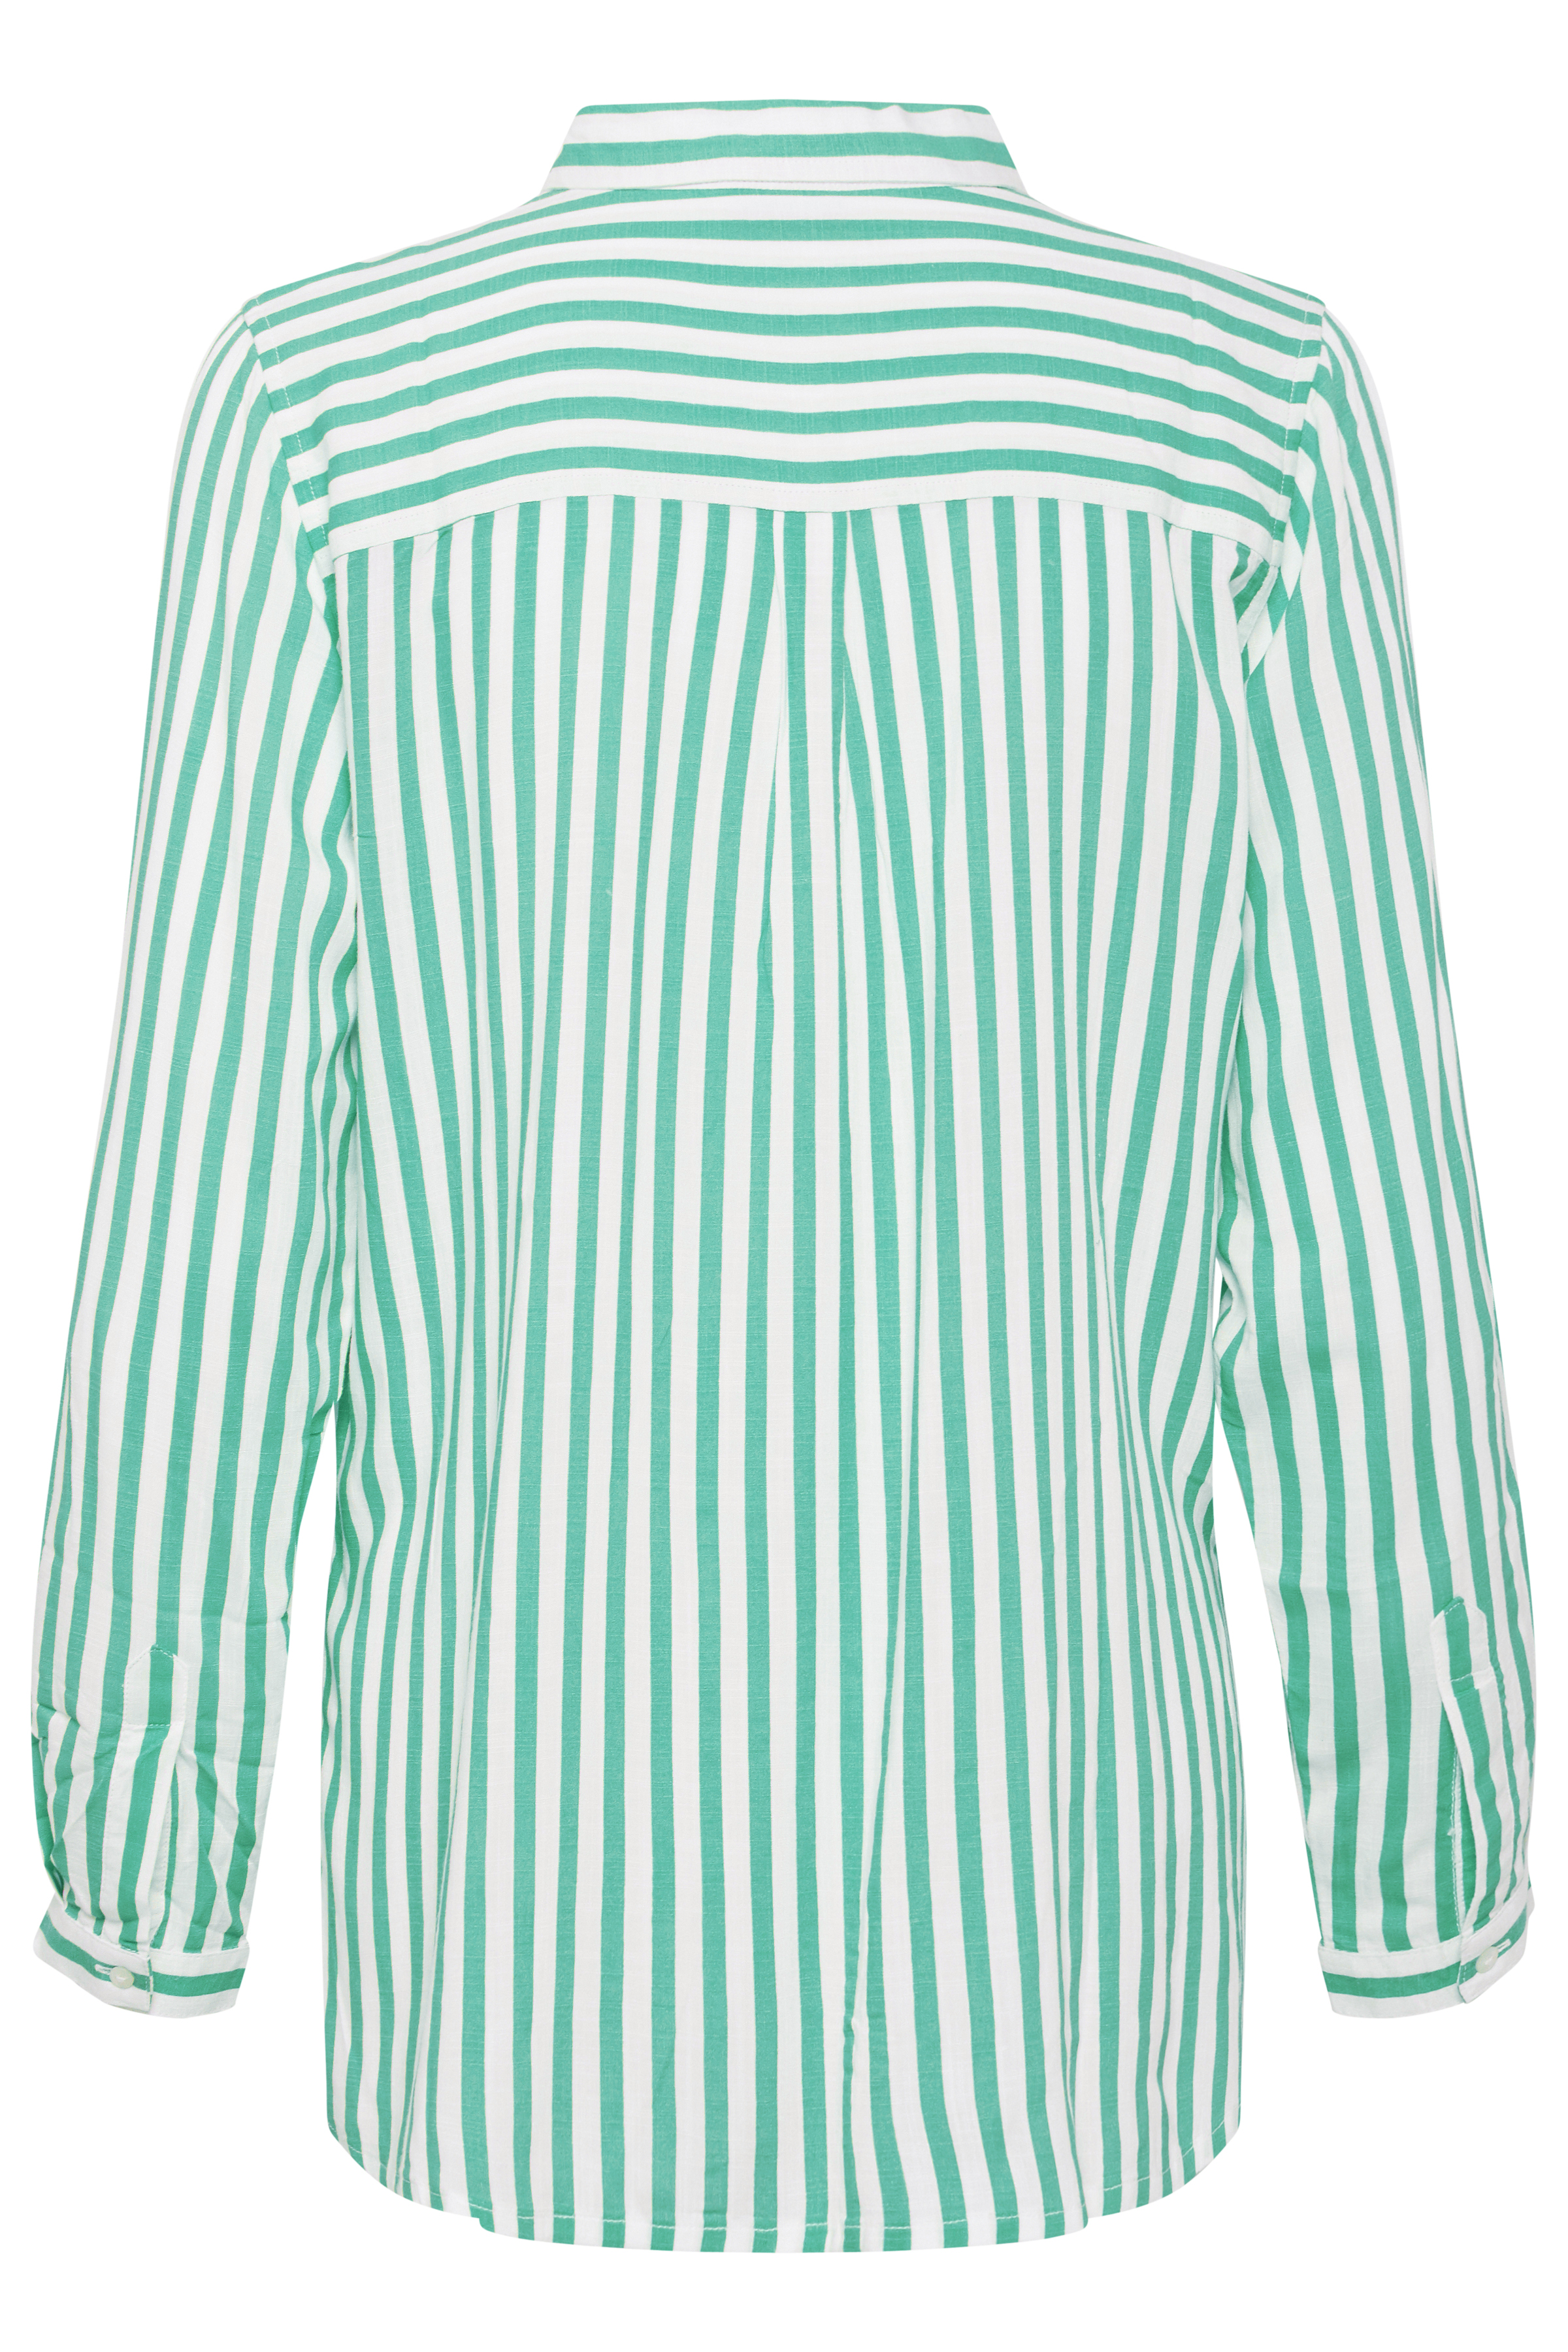 Fresh Green combi Long sleeved shirt from b.young – Buy Fresh Green combi Long sleeved shirt from size 34-44 here